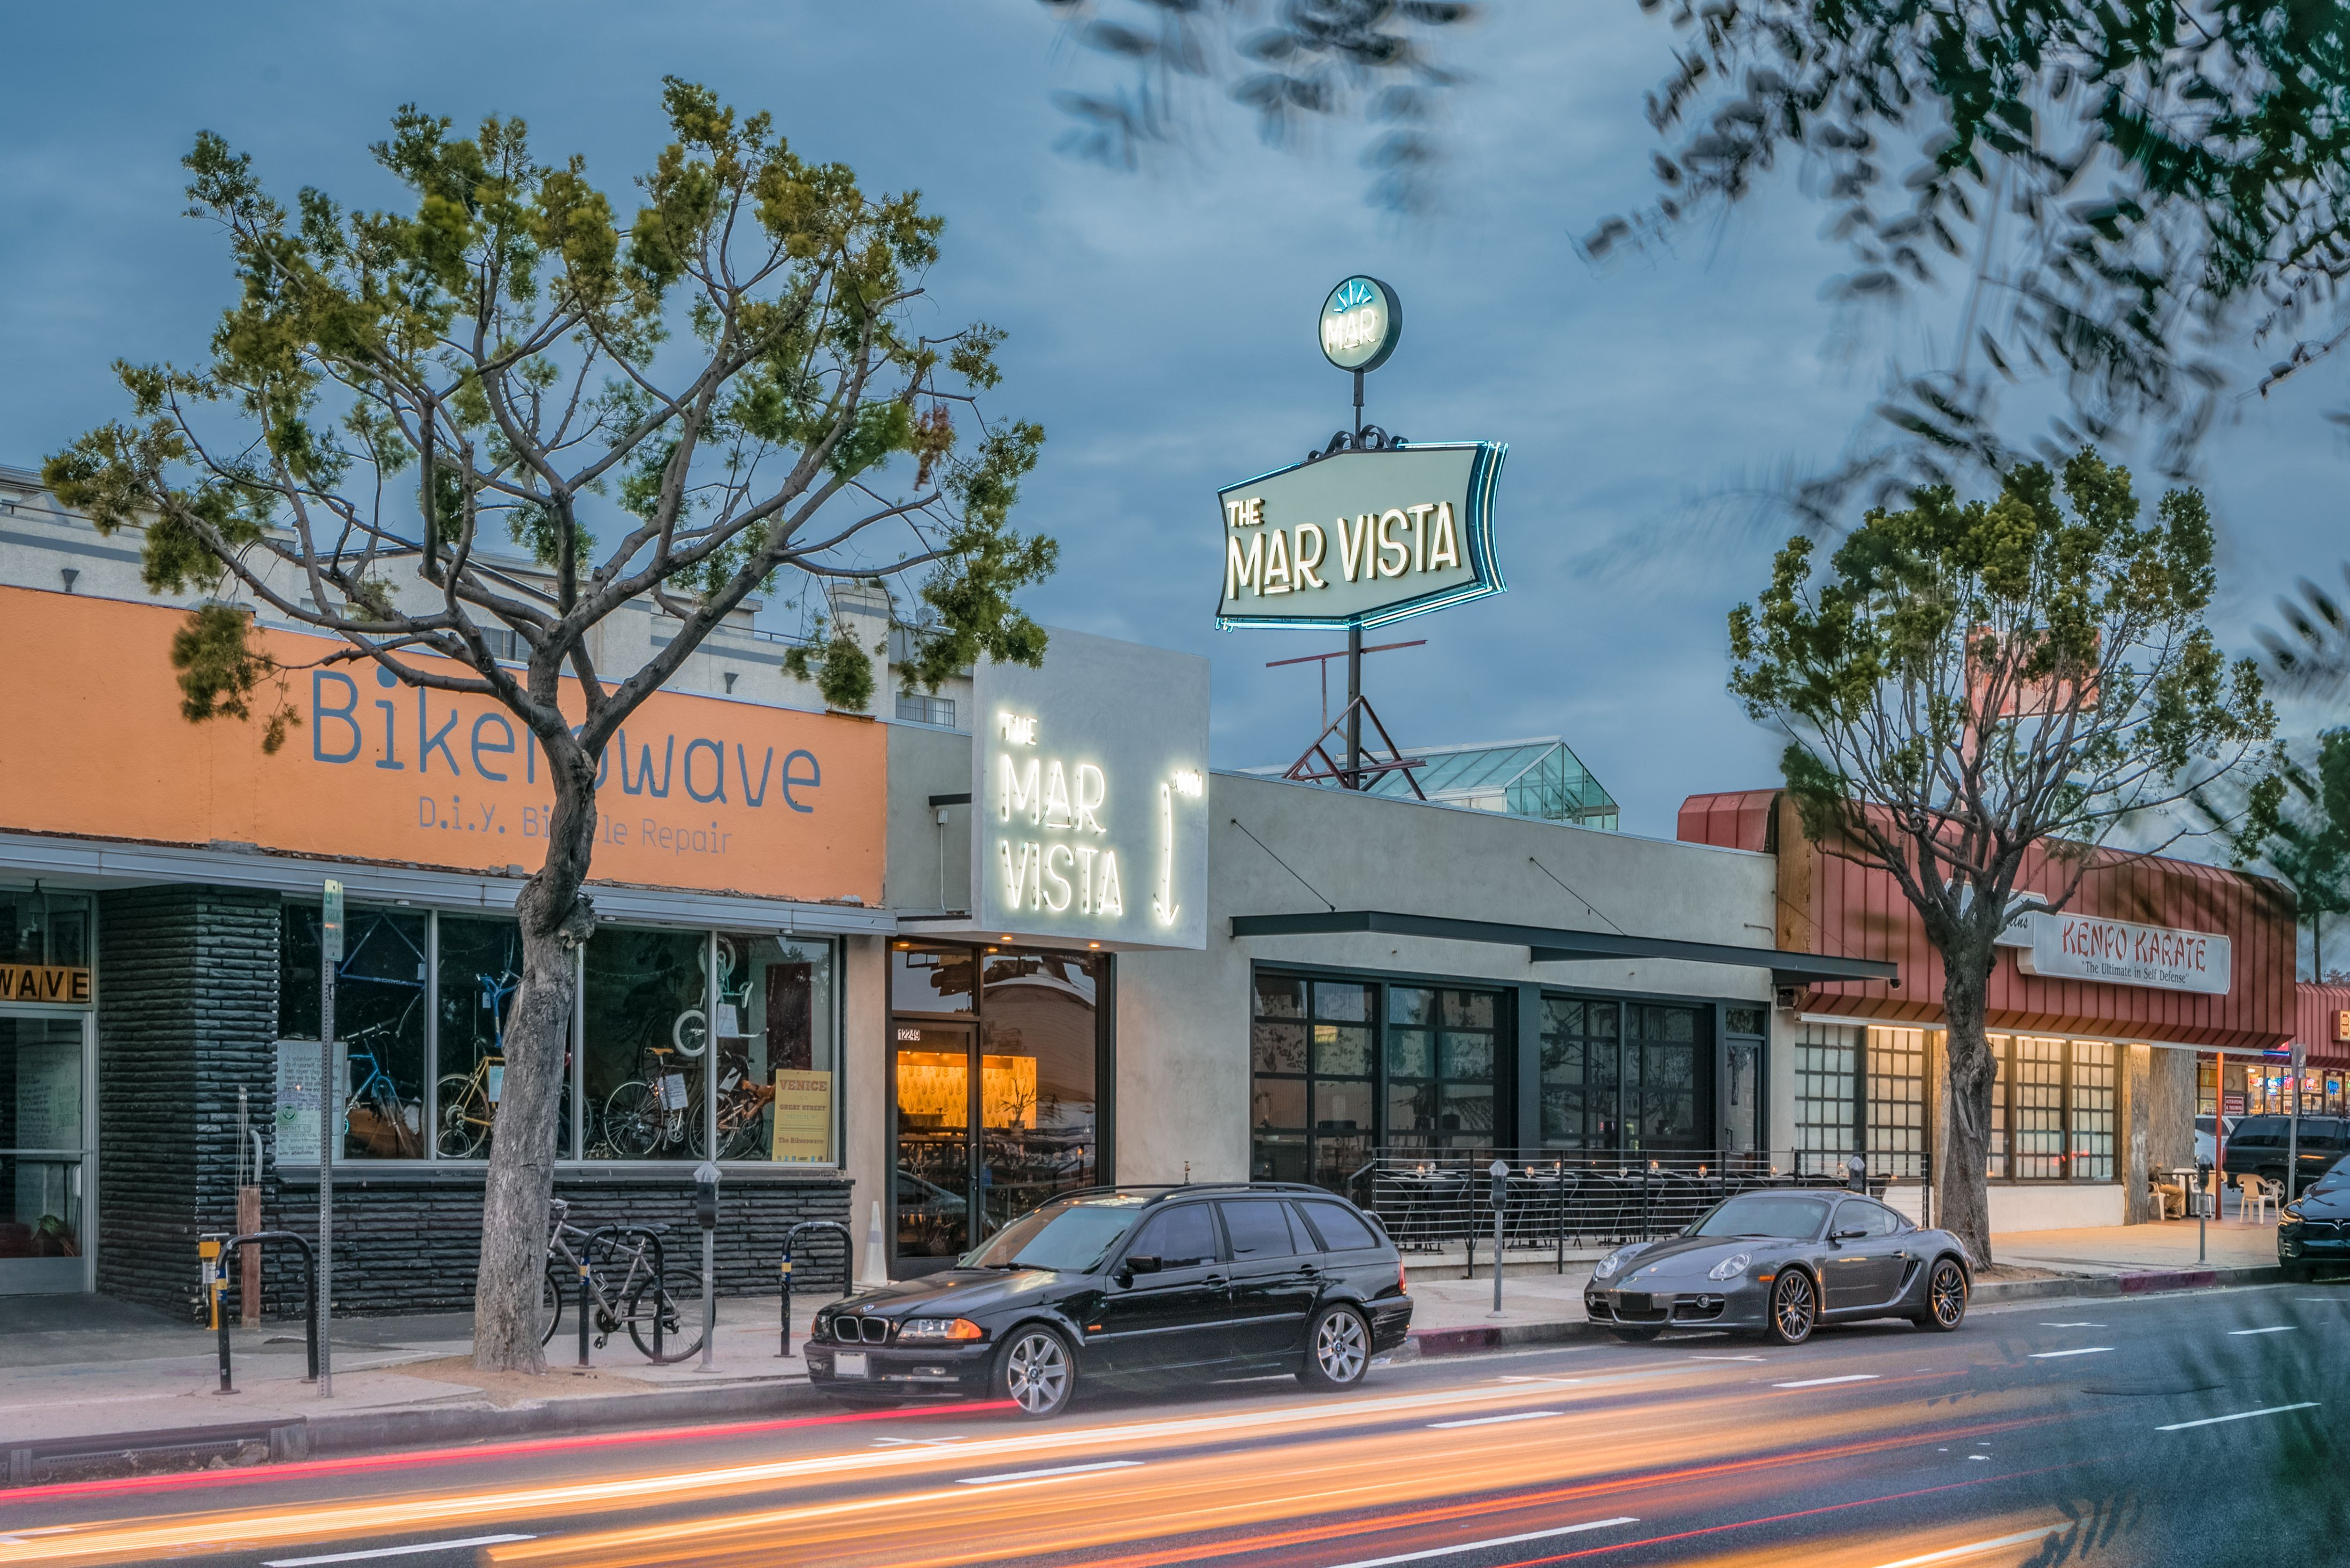 This Mar Vista Restaurant Reflects Old And New L A Places